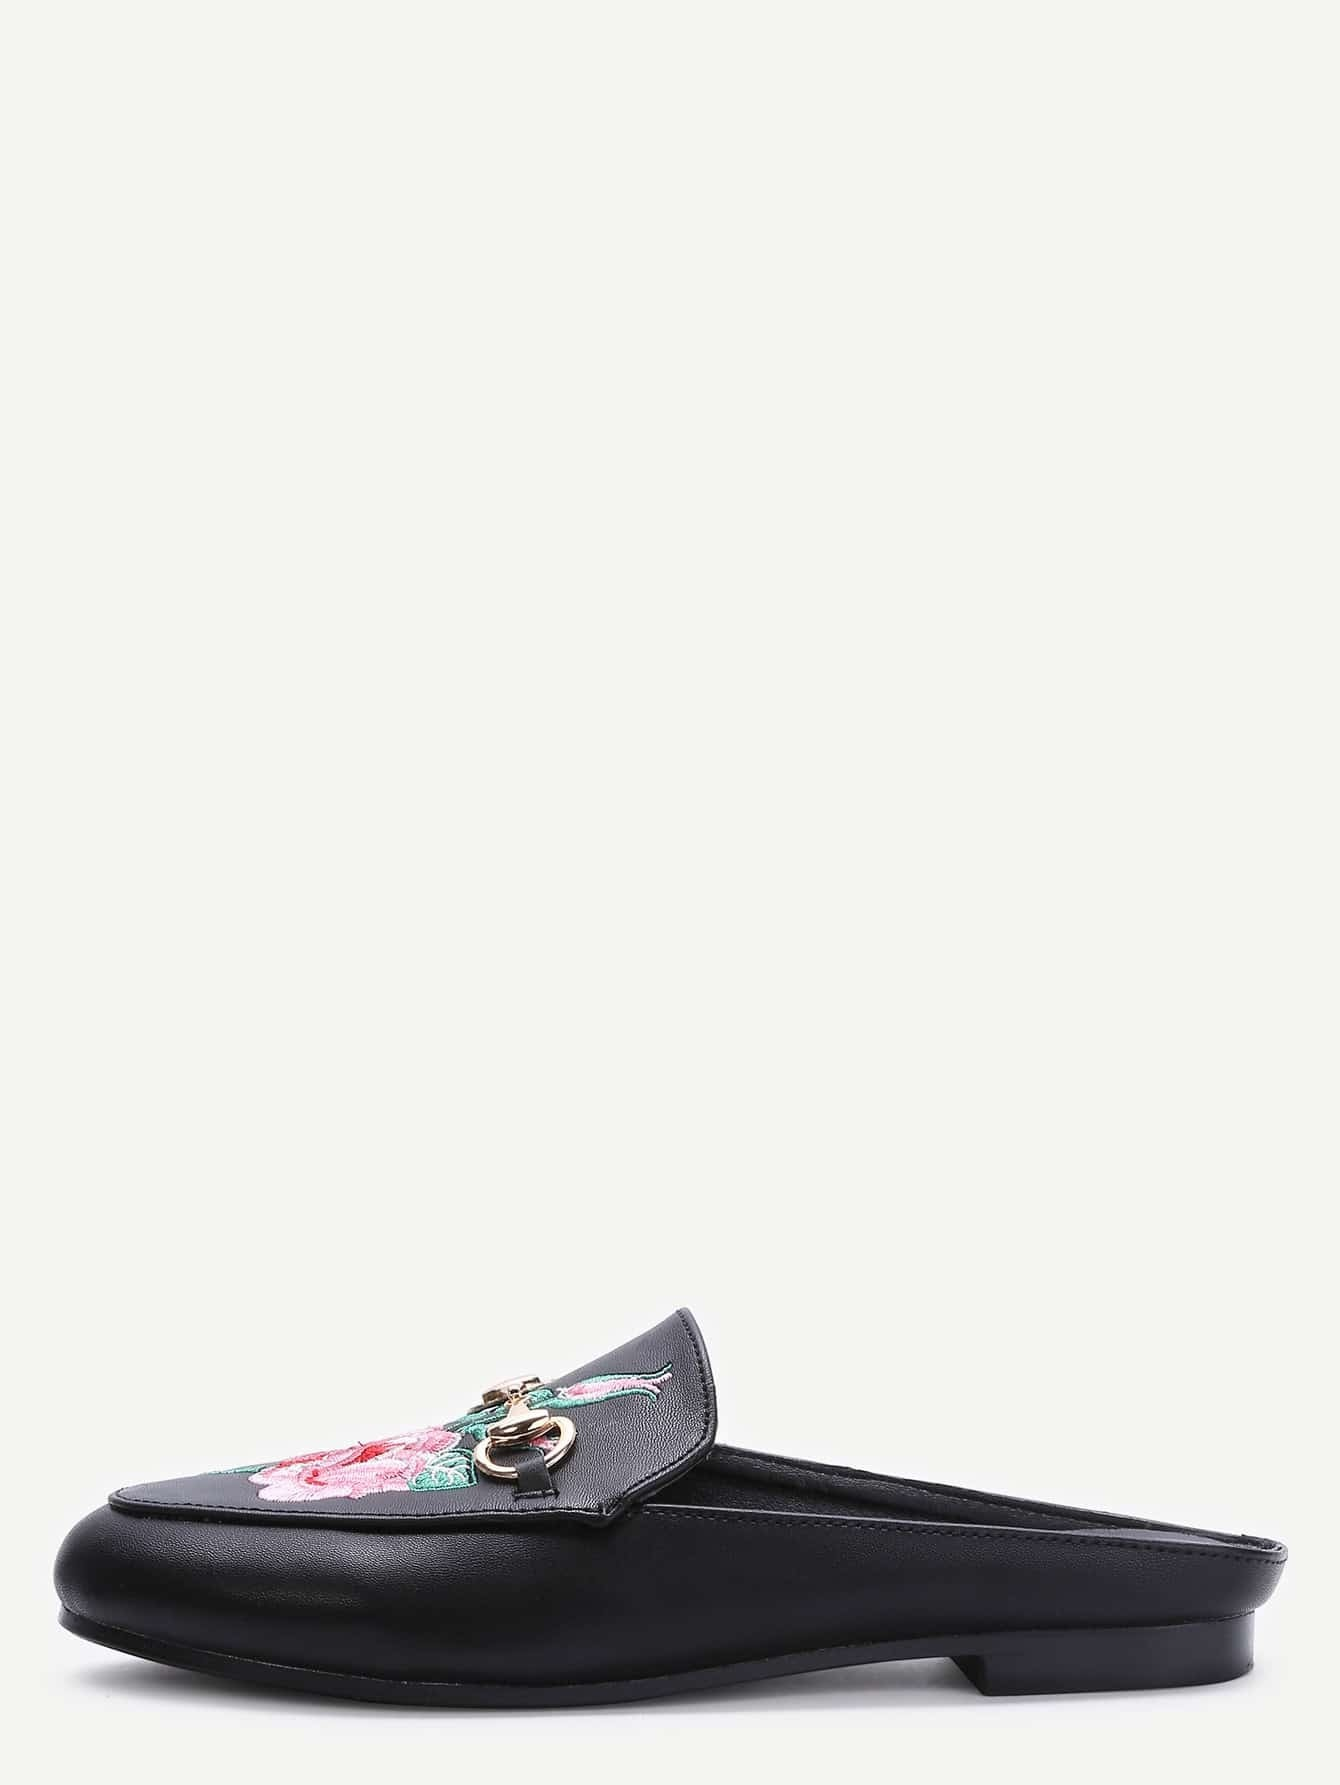 Black Faux Leather Rose Embroidered Slip-on Shoes